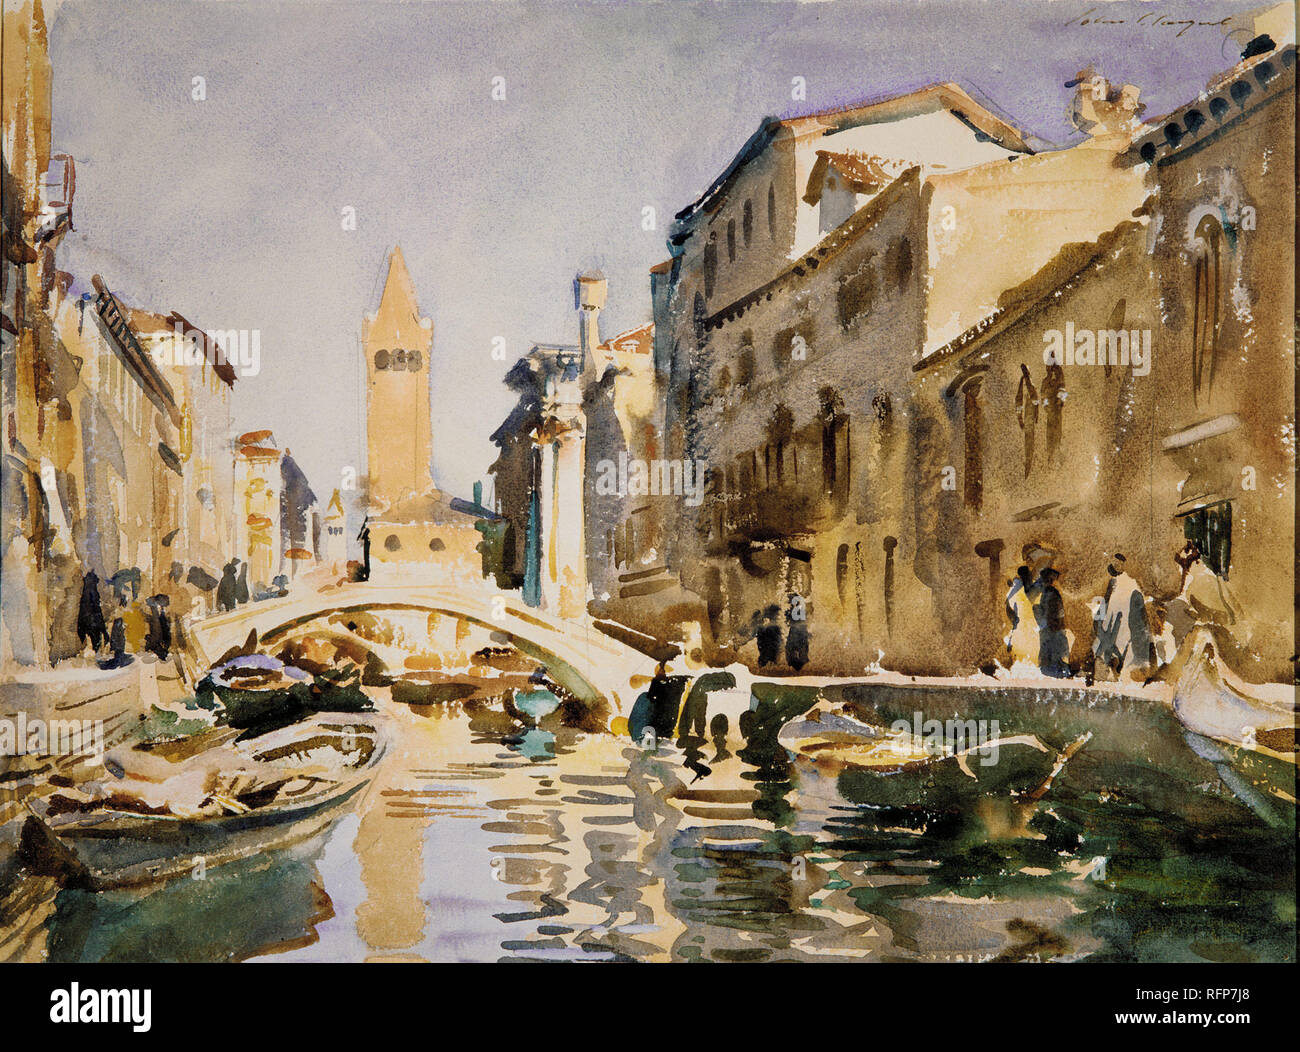 Working Title/Artist: Venetian Canal Department: Am. Paintings / Sculpture Culture/Period/Location:  HB/TOA Date Code:  Working Date: 1913 scanned for collections - Stock Image